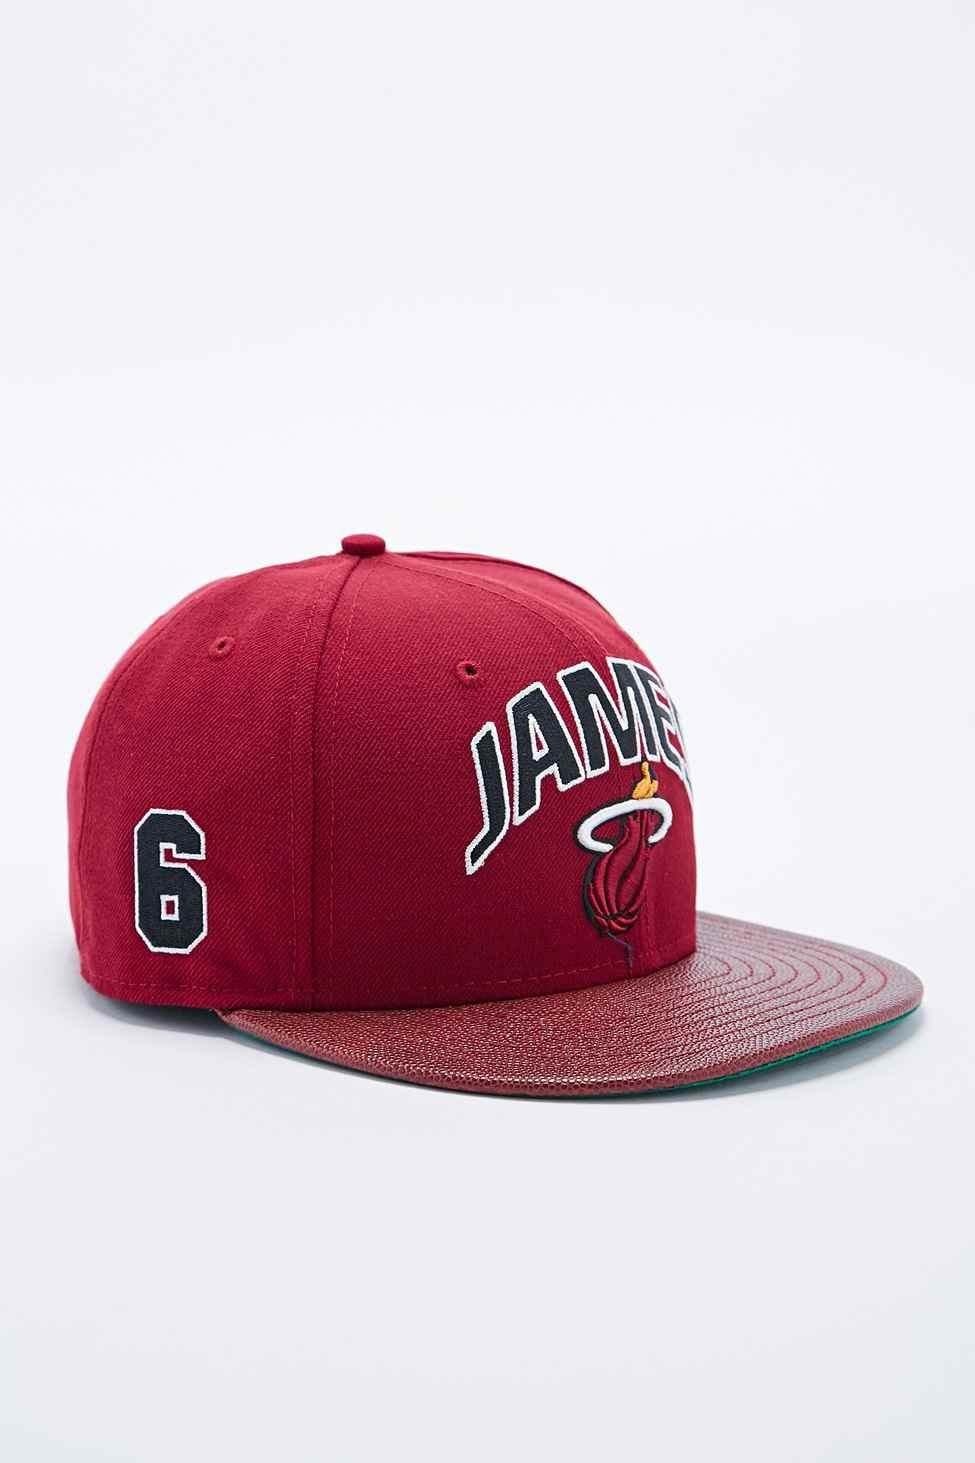 7be65a69666 KTZ 9fifty Lebron James Snapback Cap in Burgundy in Red for Men - Lyst